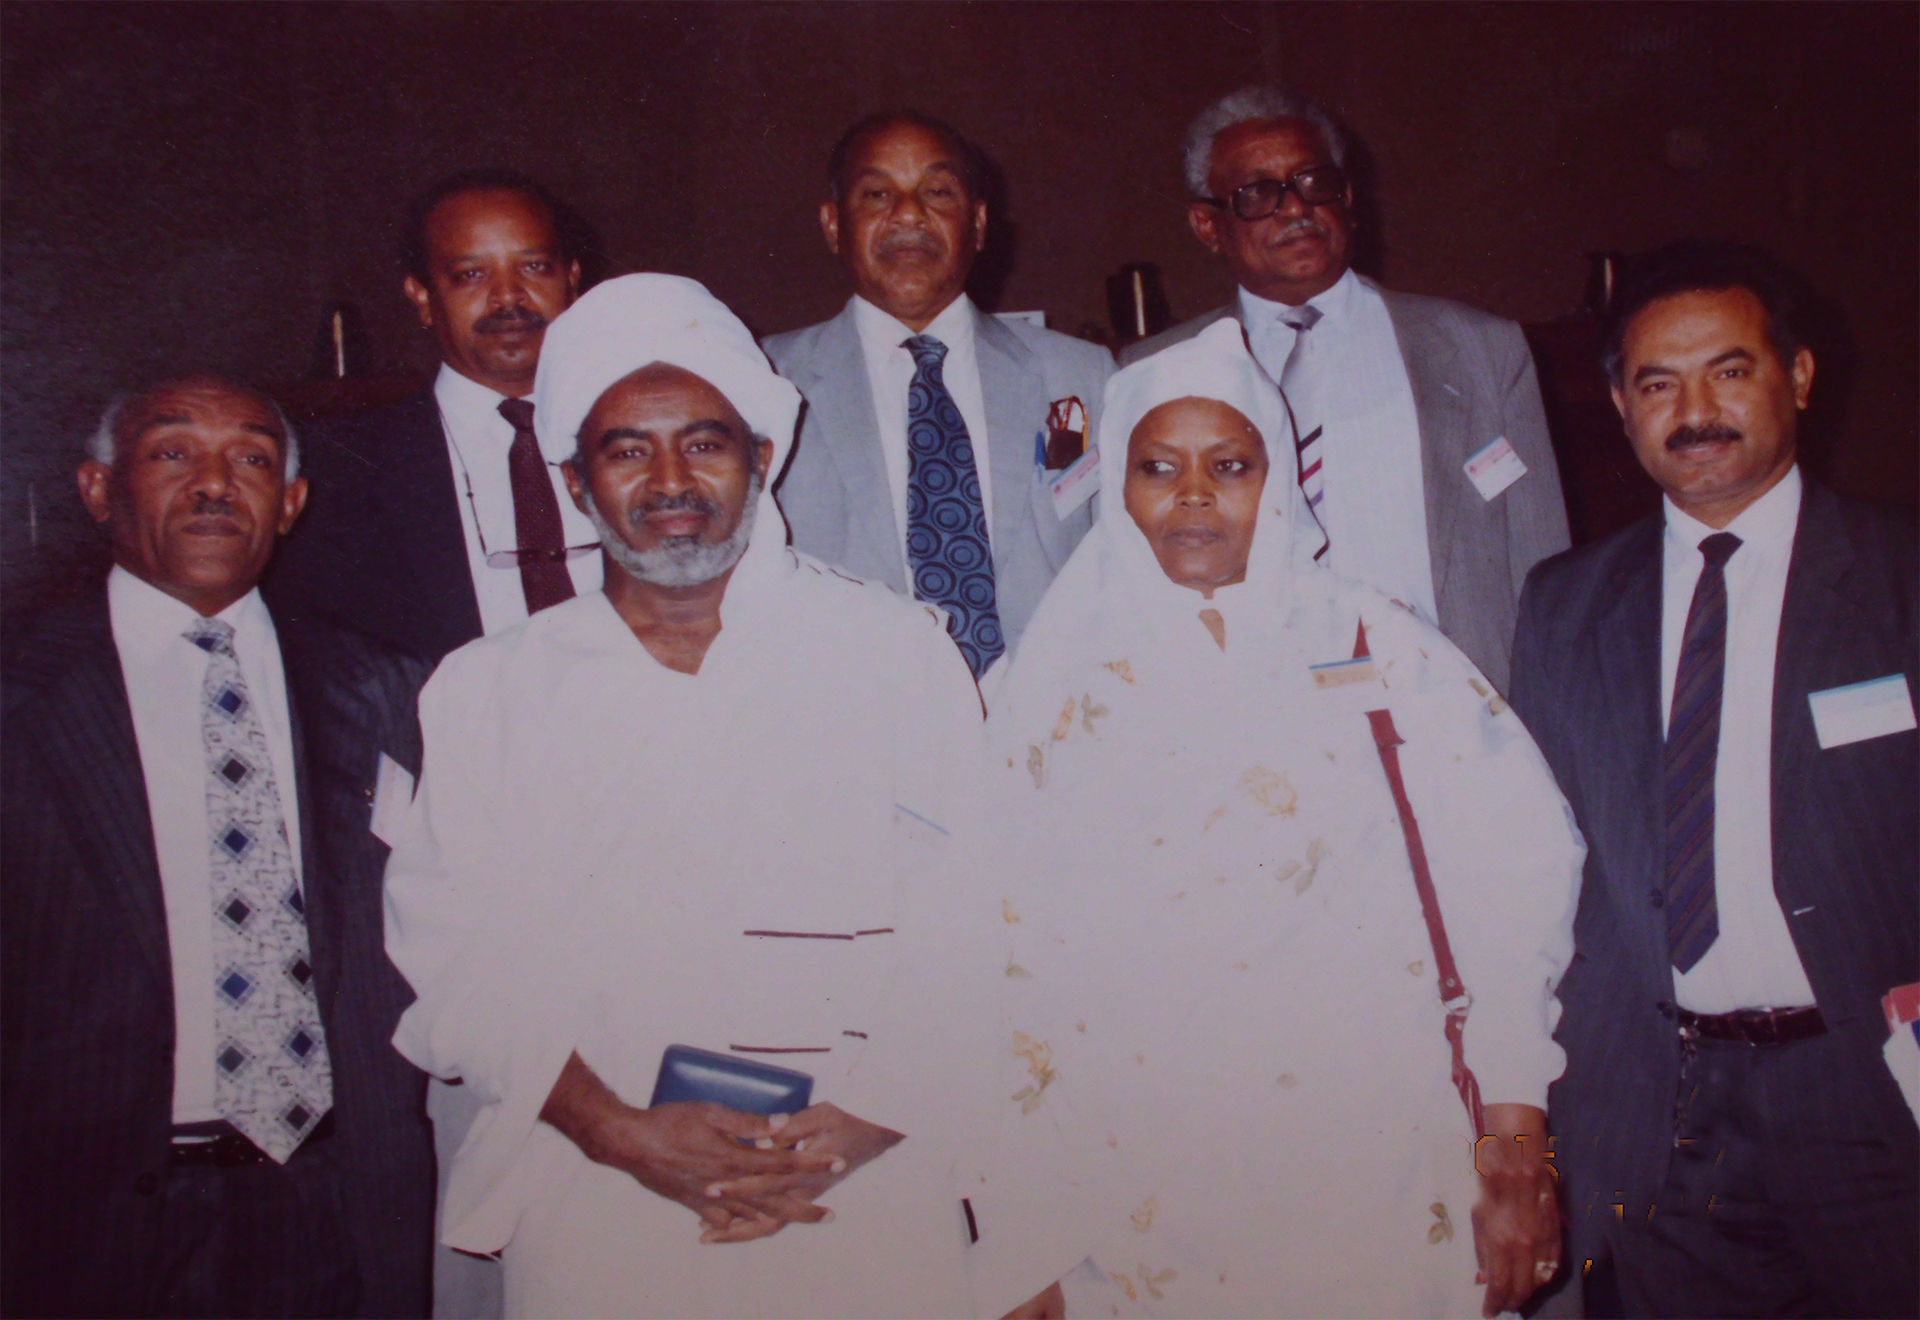 Prof-Elsheikh-Mrs.-Mahgoub-after-receiving-Shosha-prize-1989